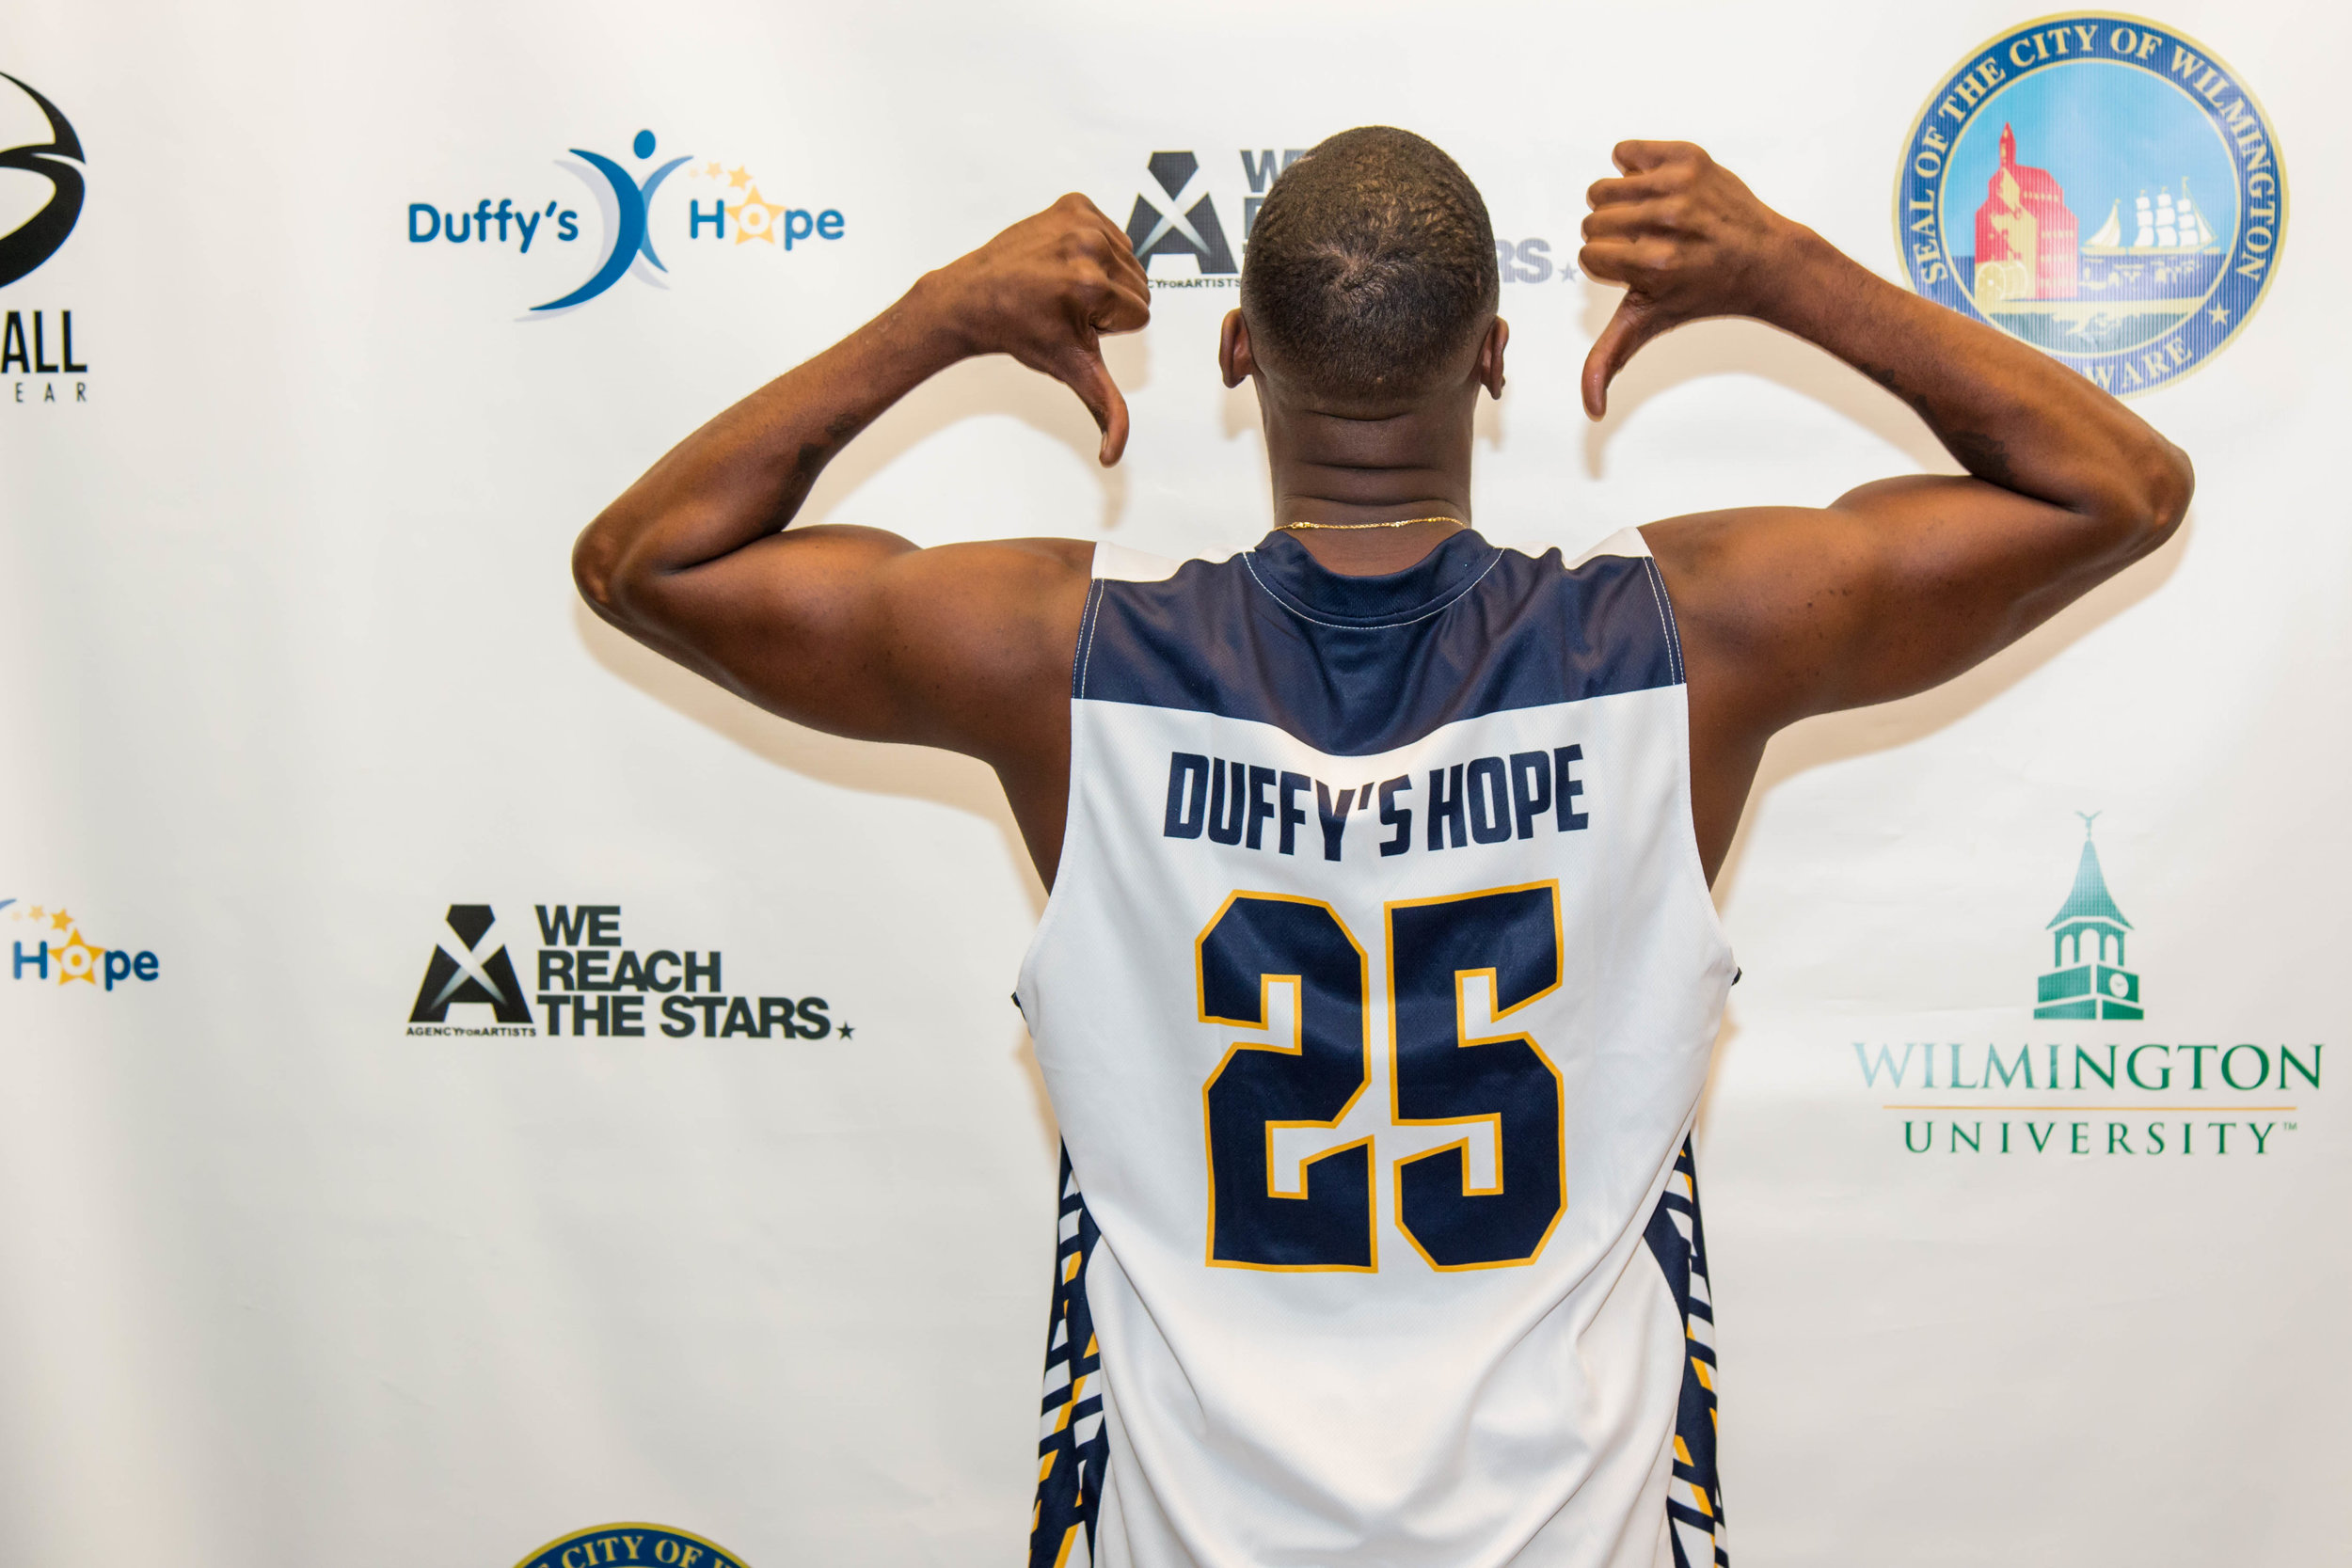 Jackie Long Repping Duffy's Hope